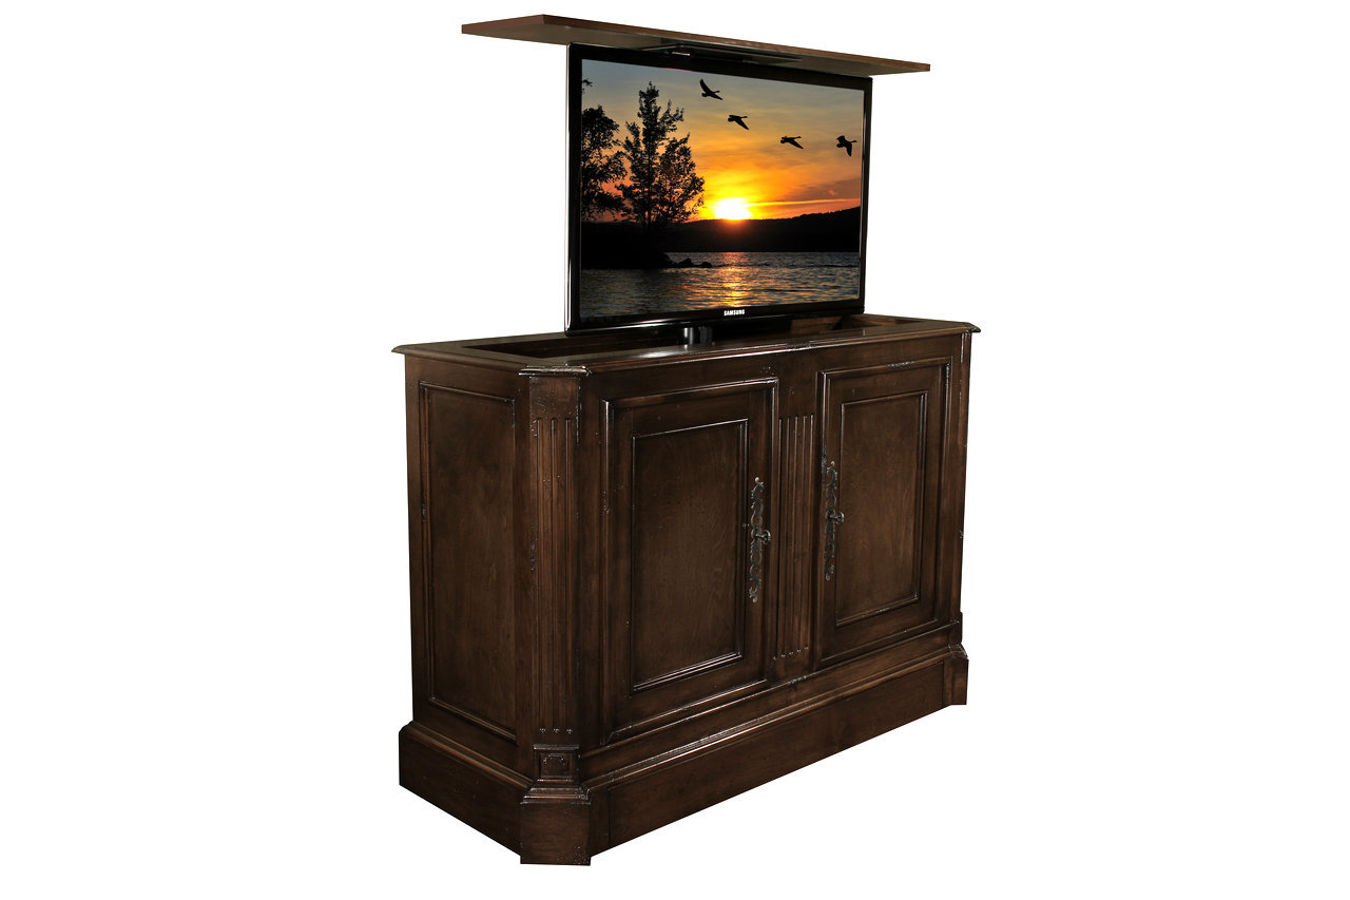 flat screen tv riser sierra tv lift cabinets. Black Bedroom Furniture Sets. Home Design Ideas